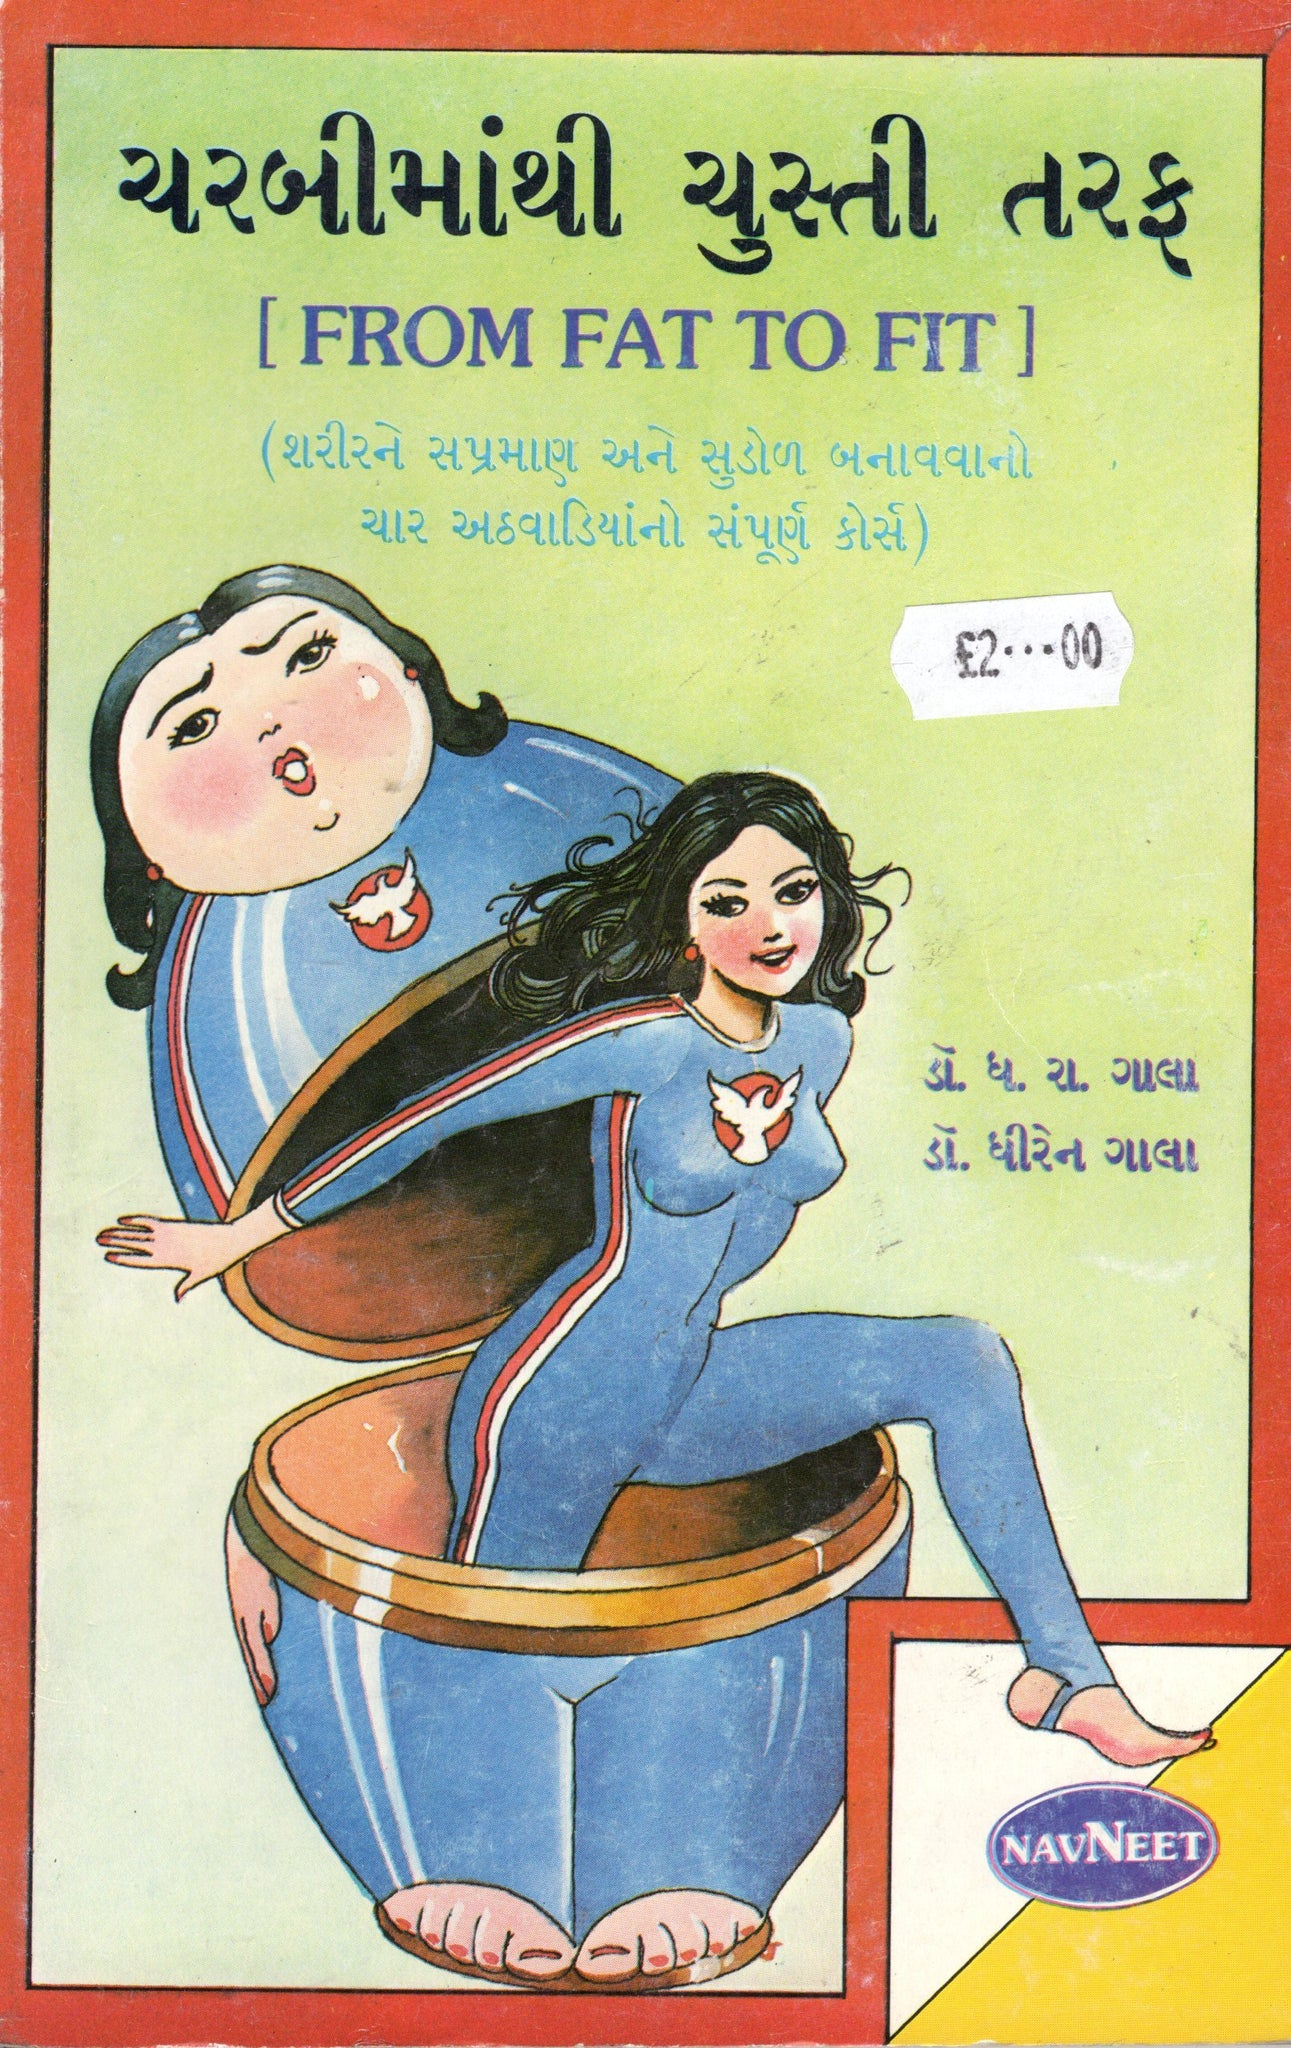 From Fat to Fit - Gujarati